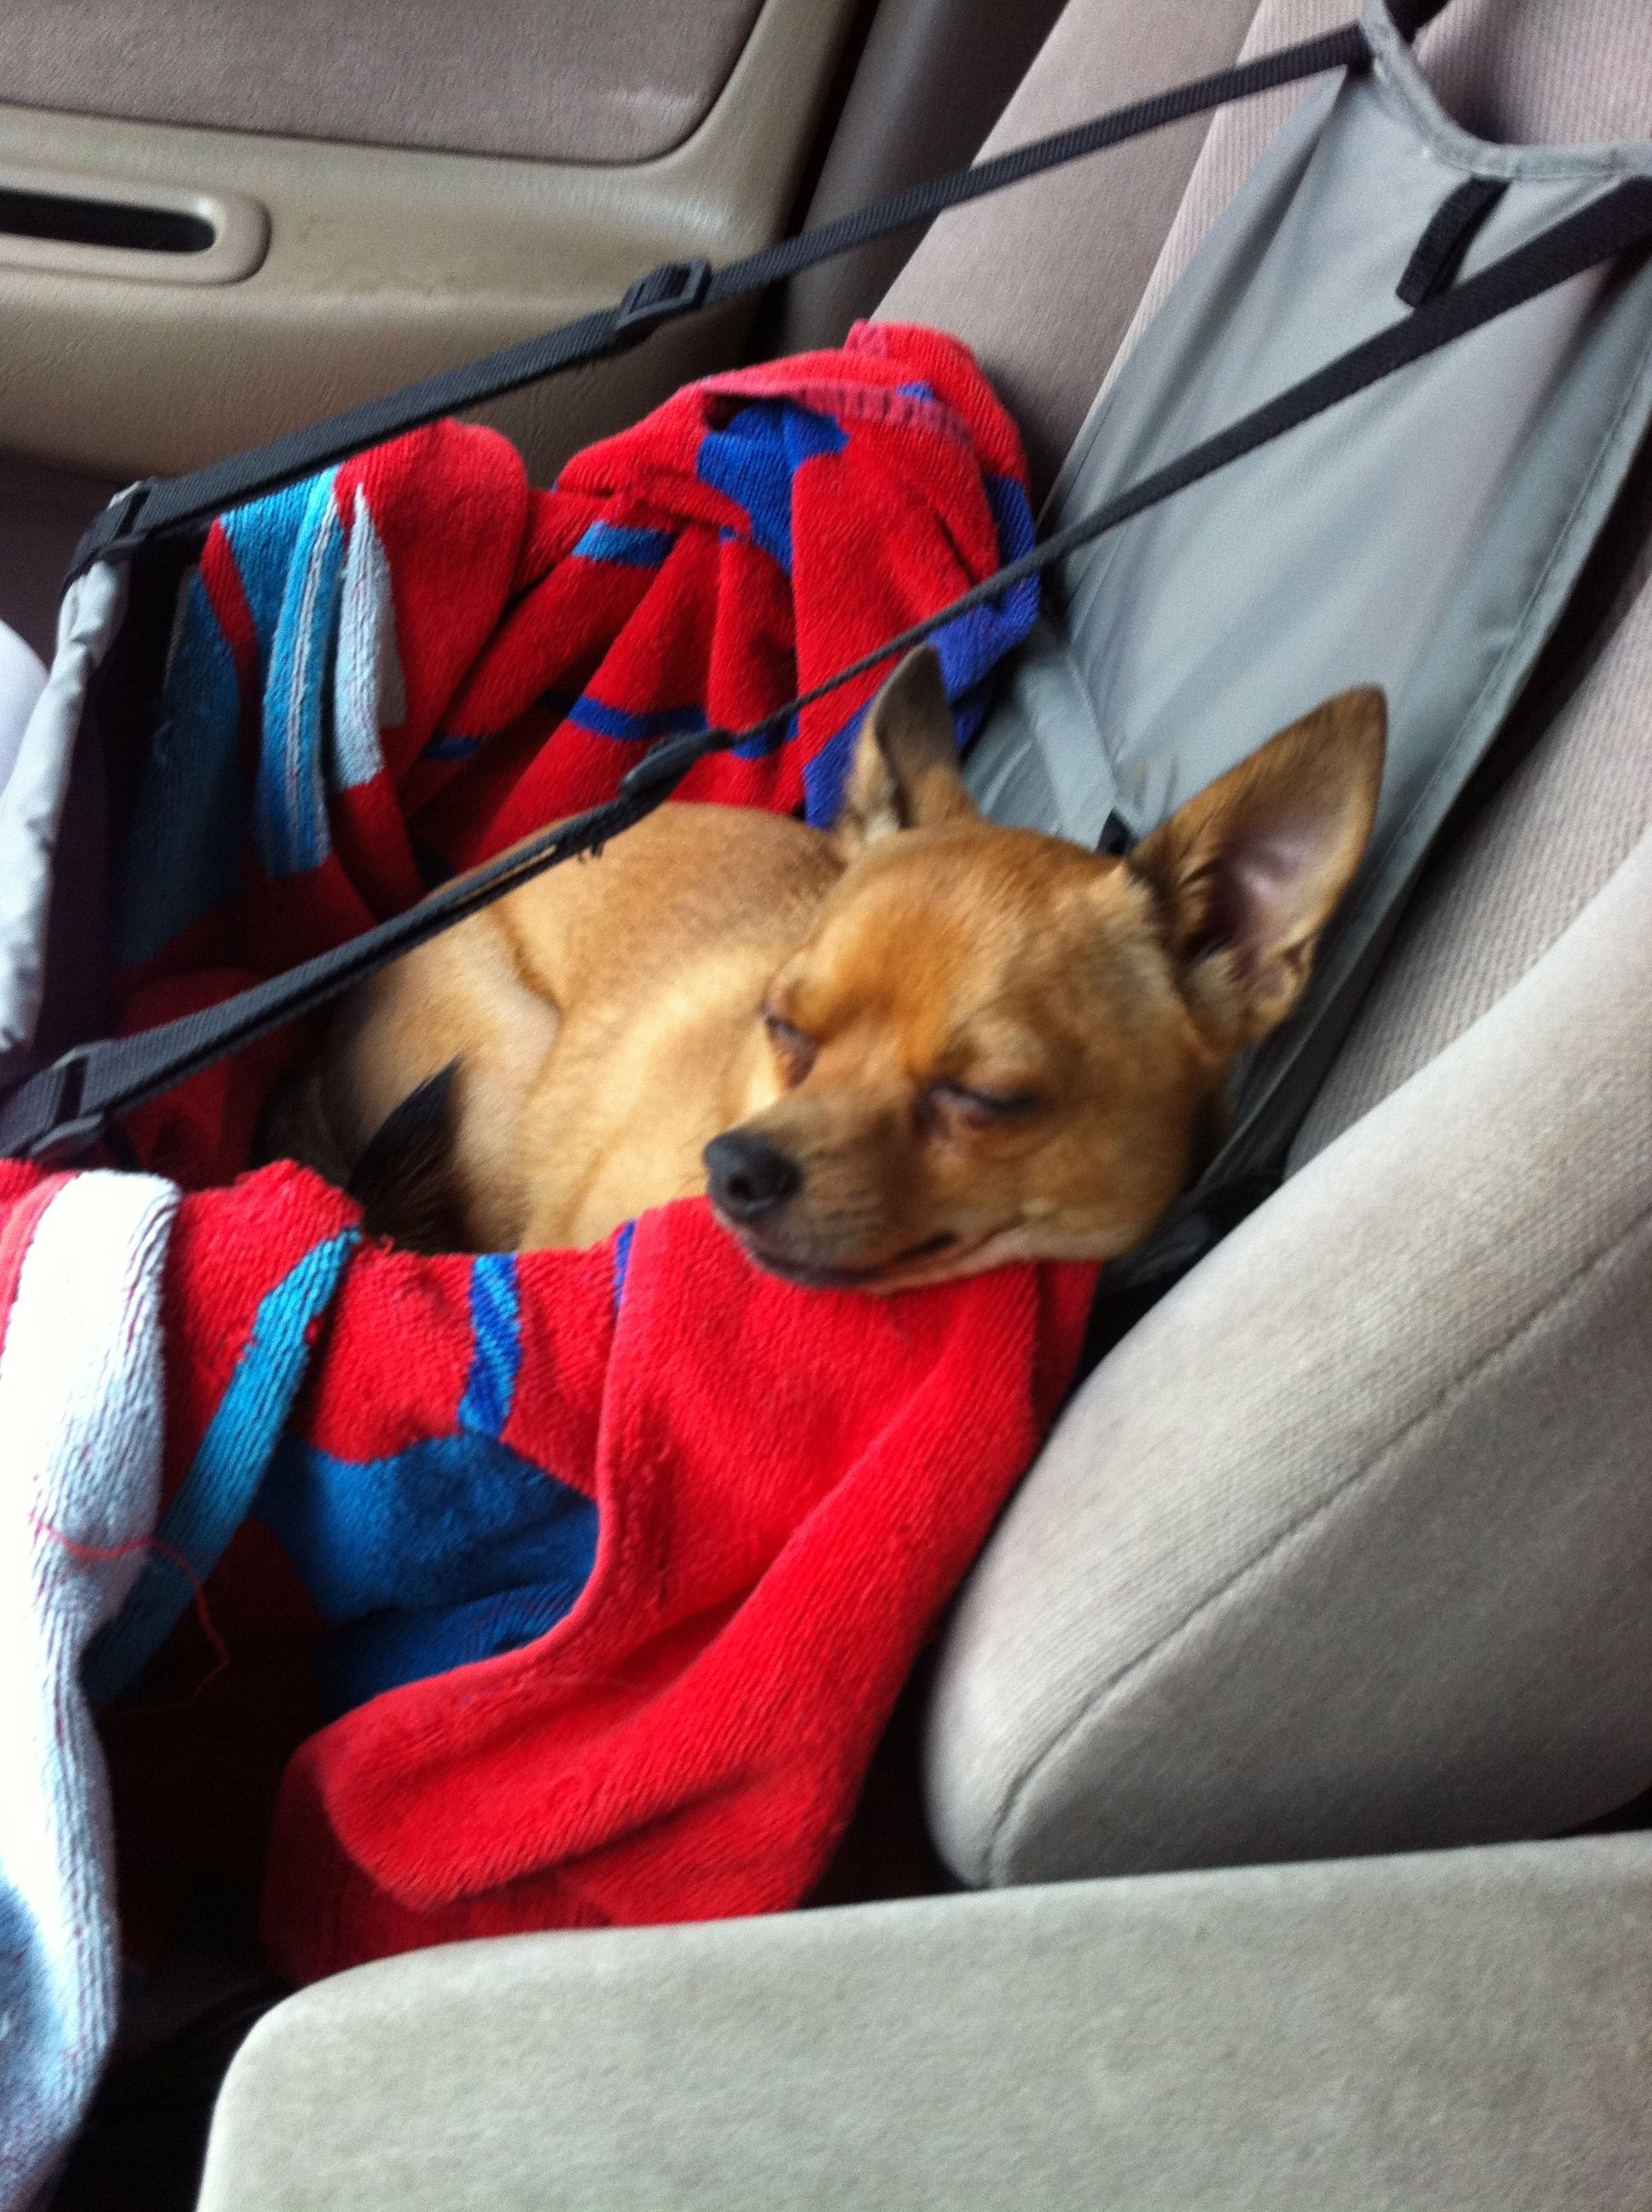 #ridecolorfully with your best friend sleeping in the passenger seat.